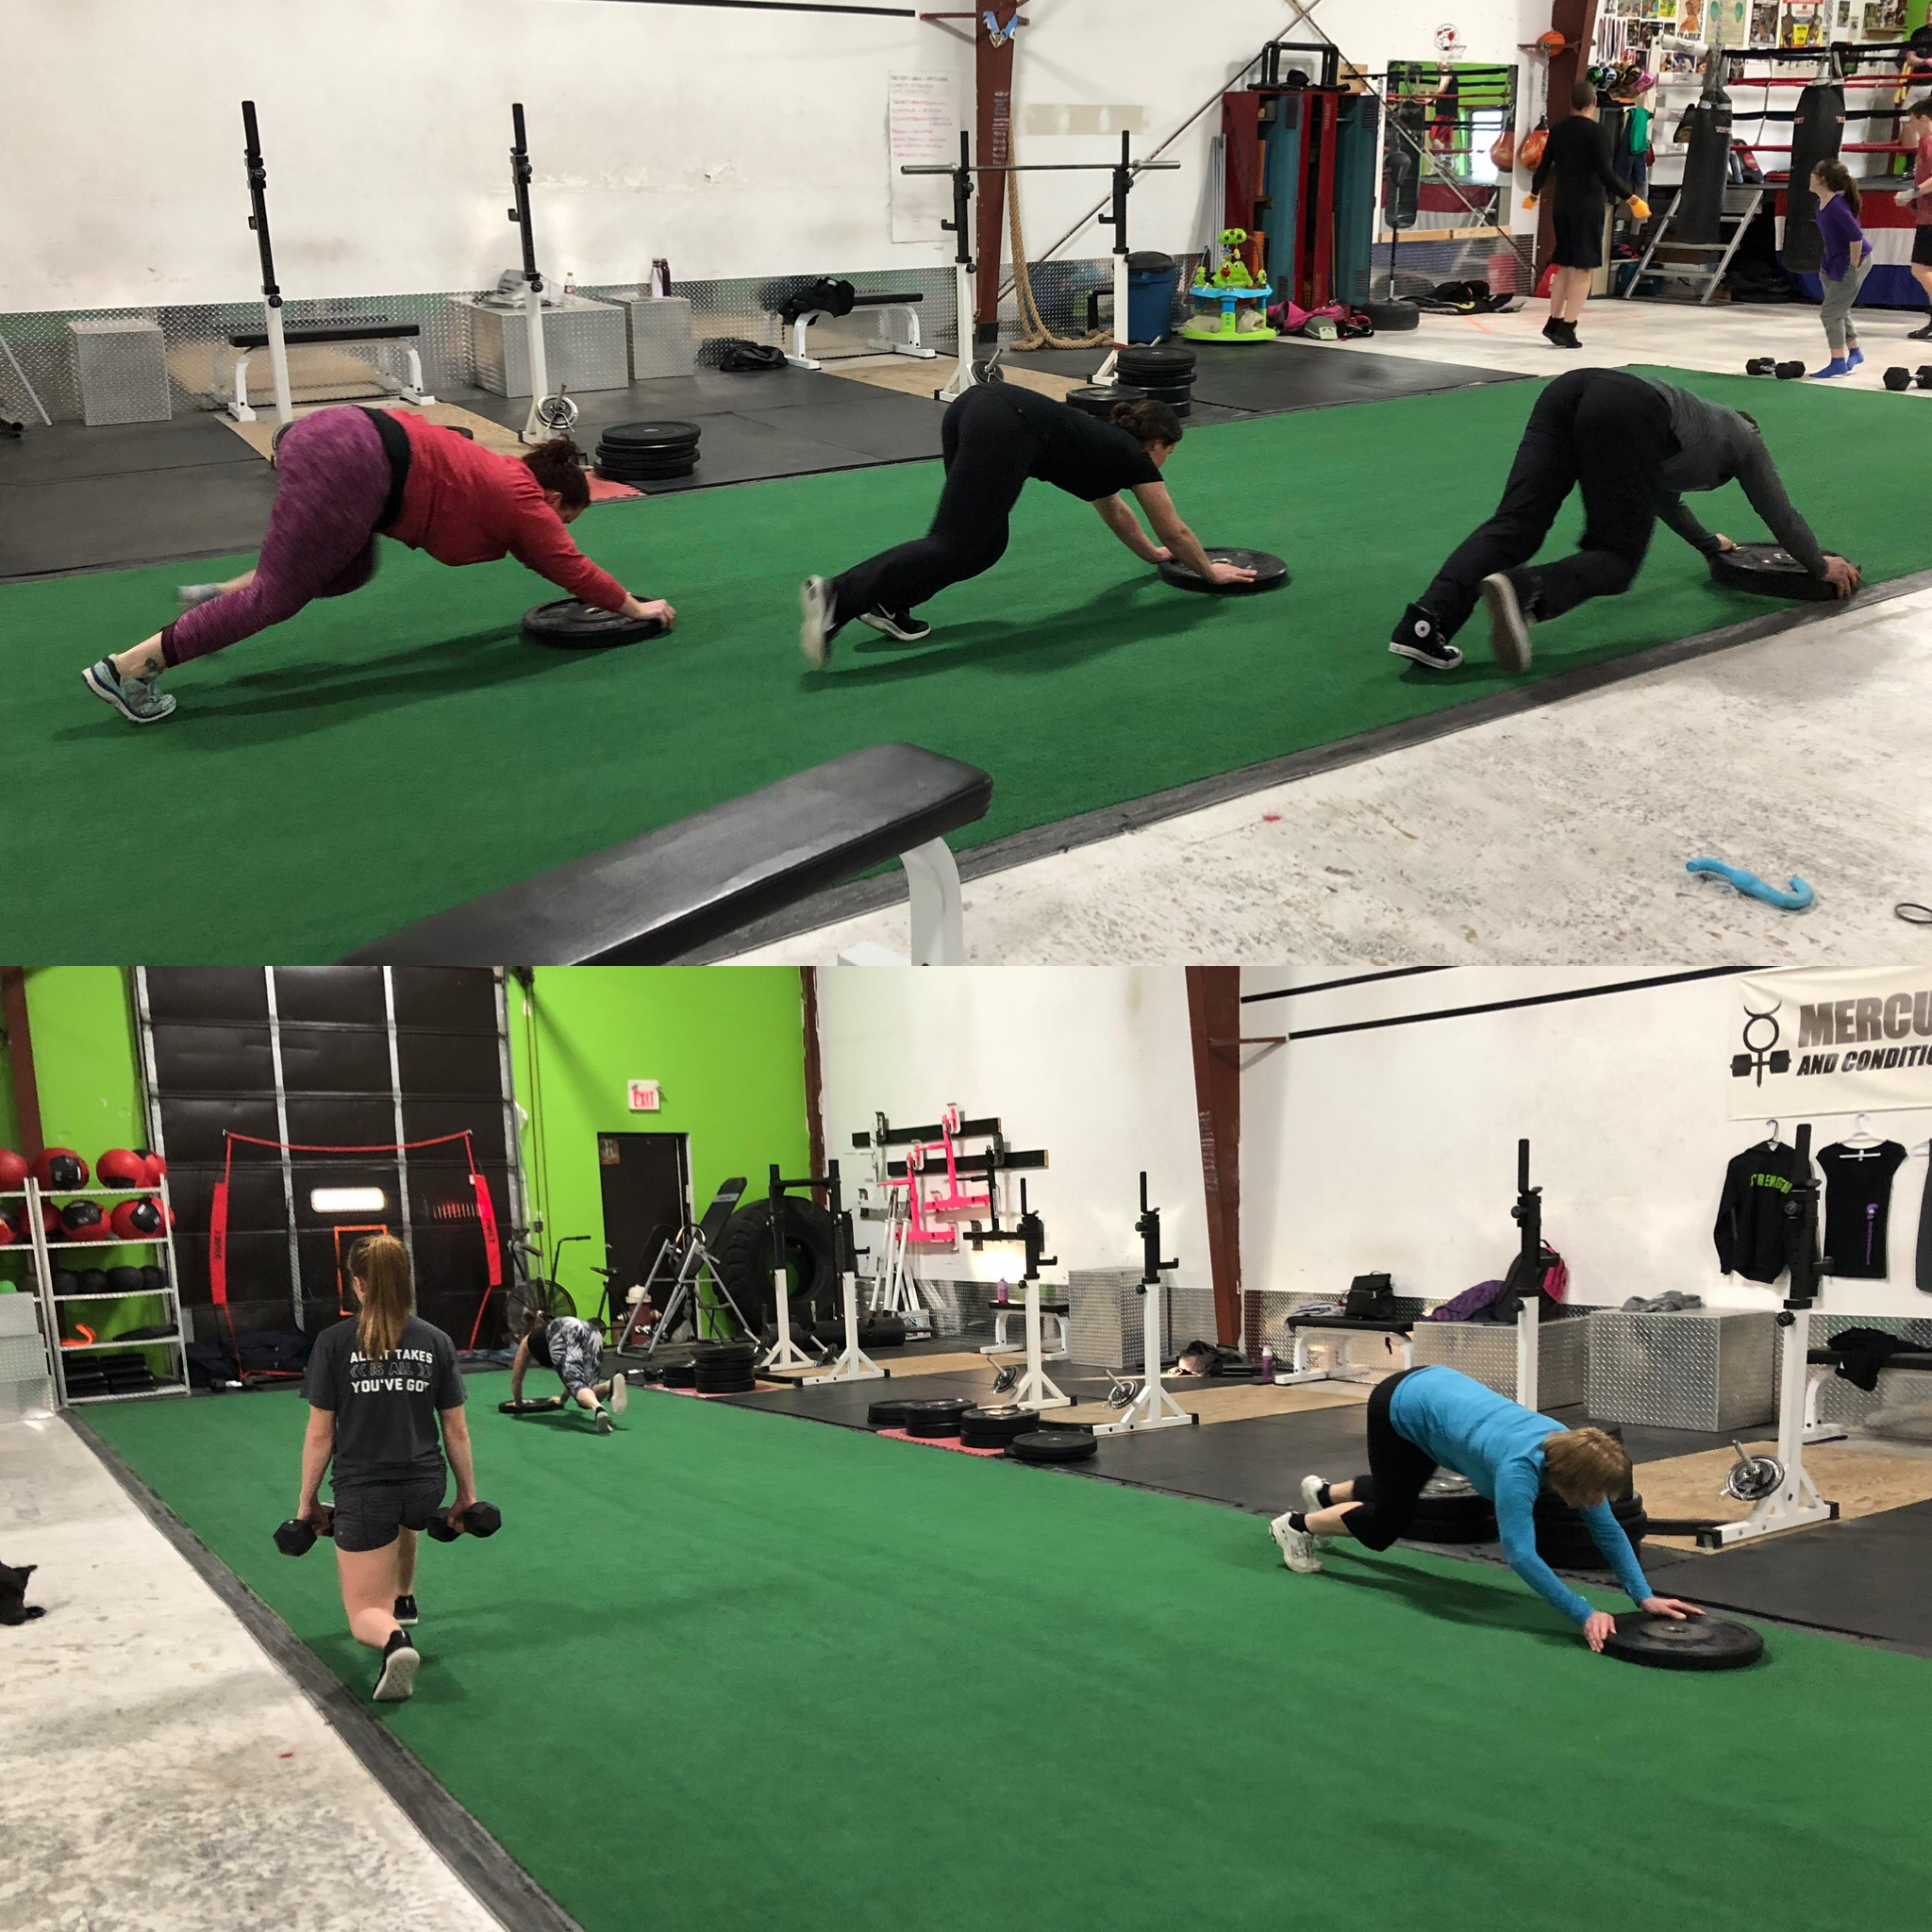 A busier 6pm session with some plate pushes and backward lunges